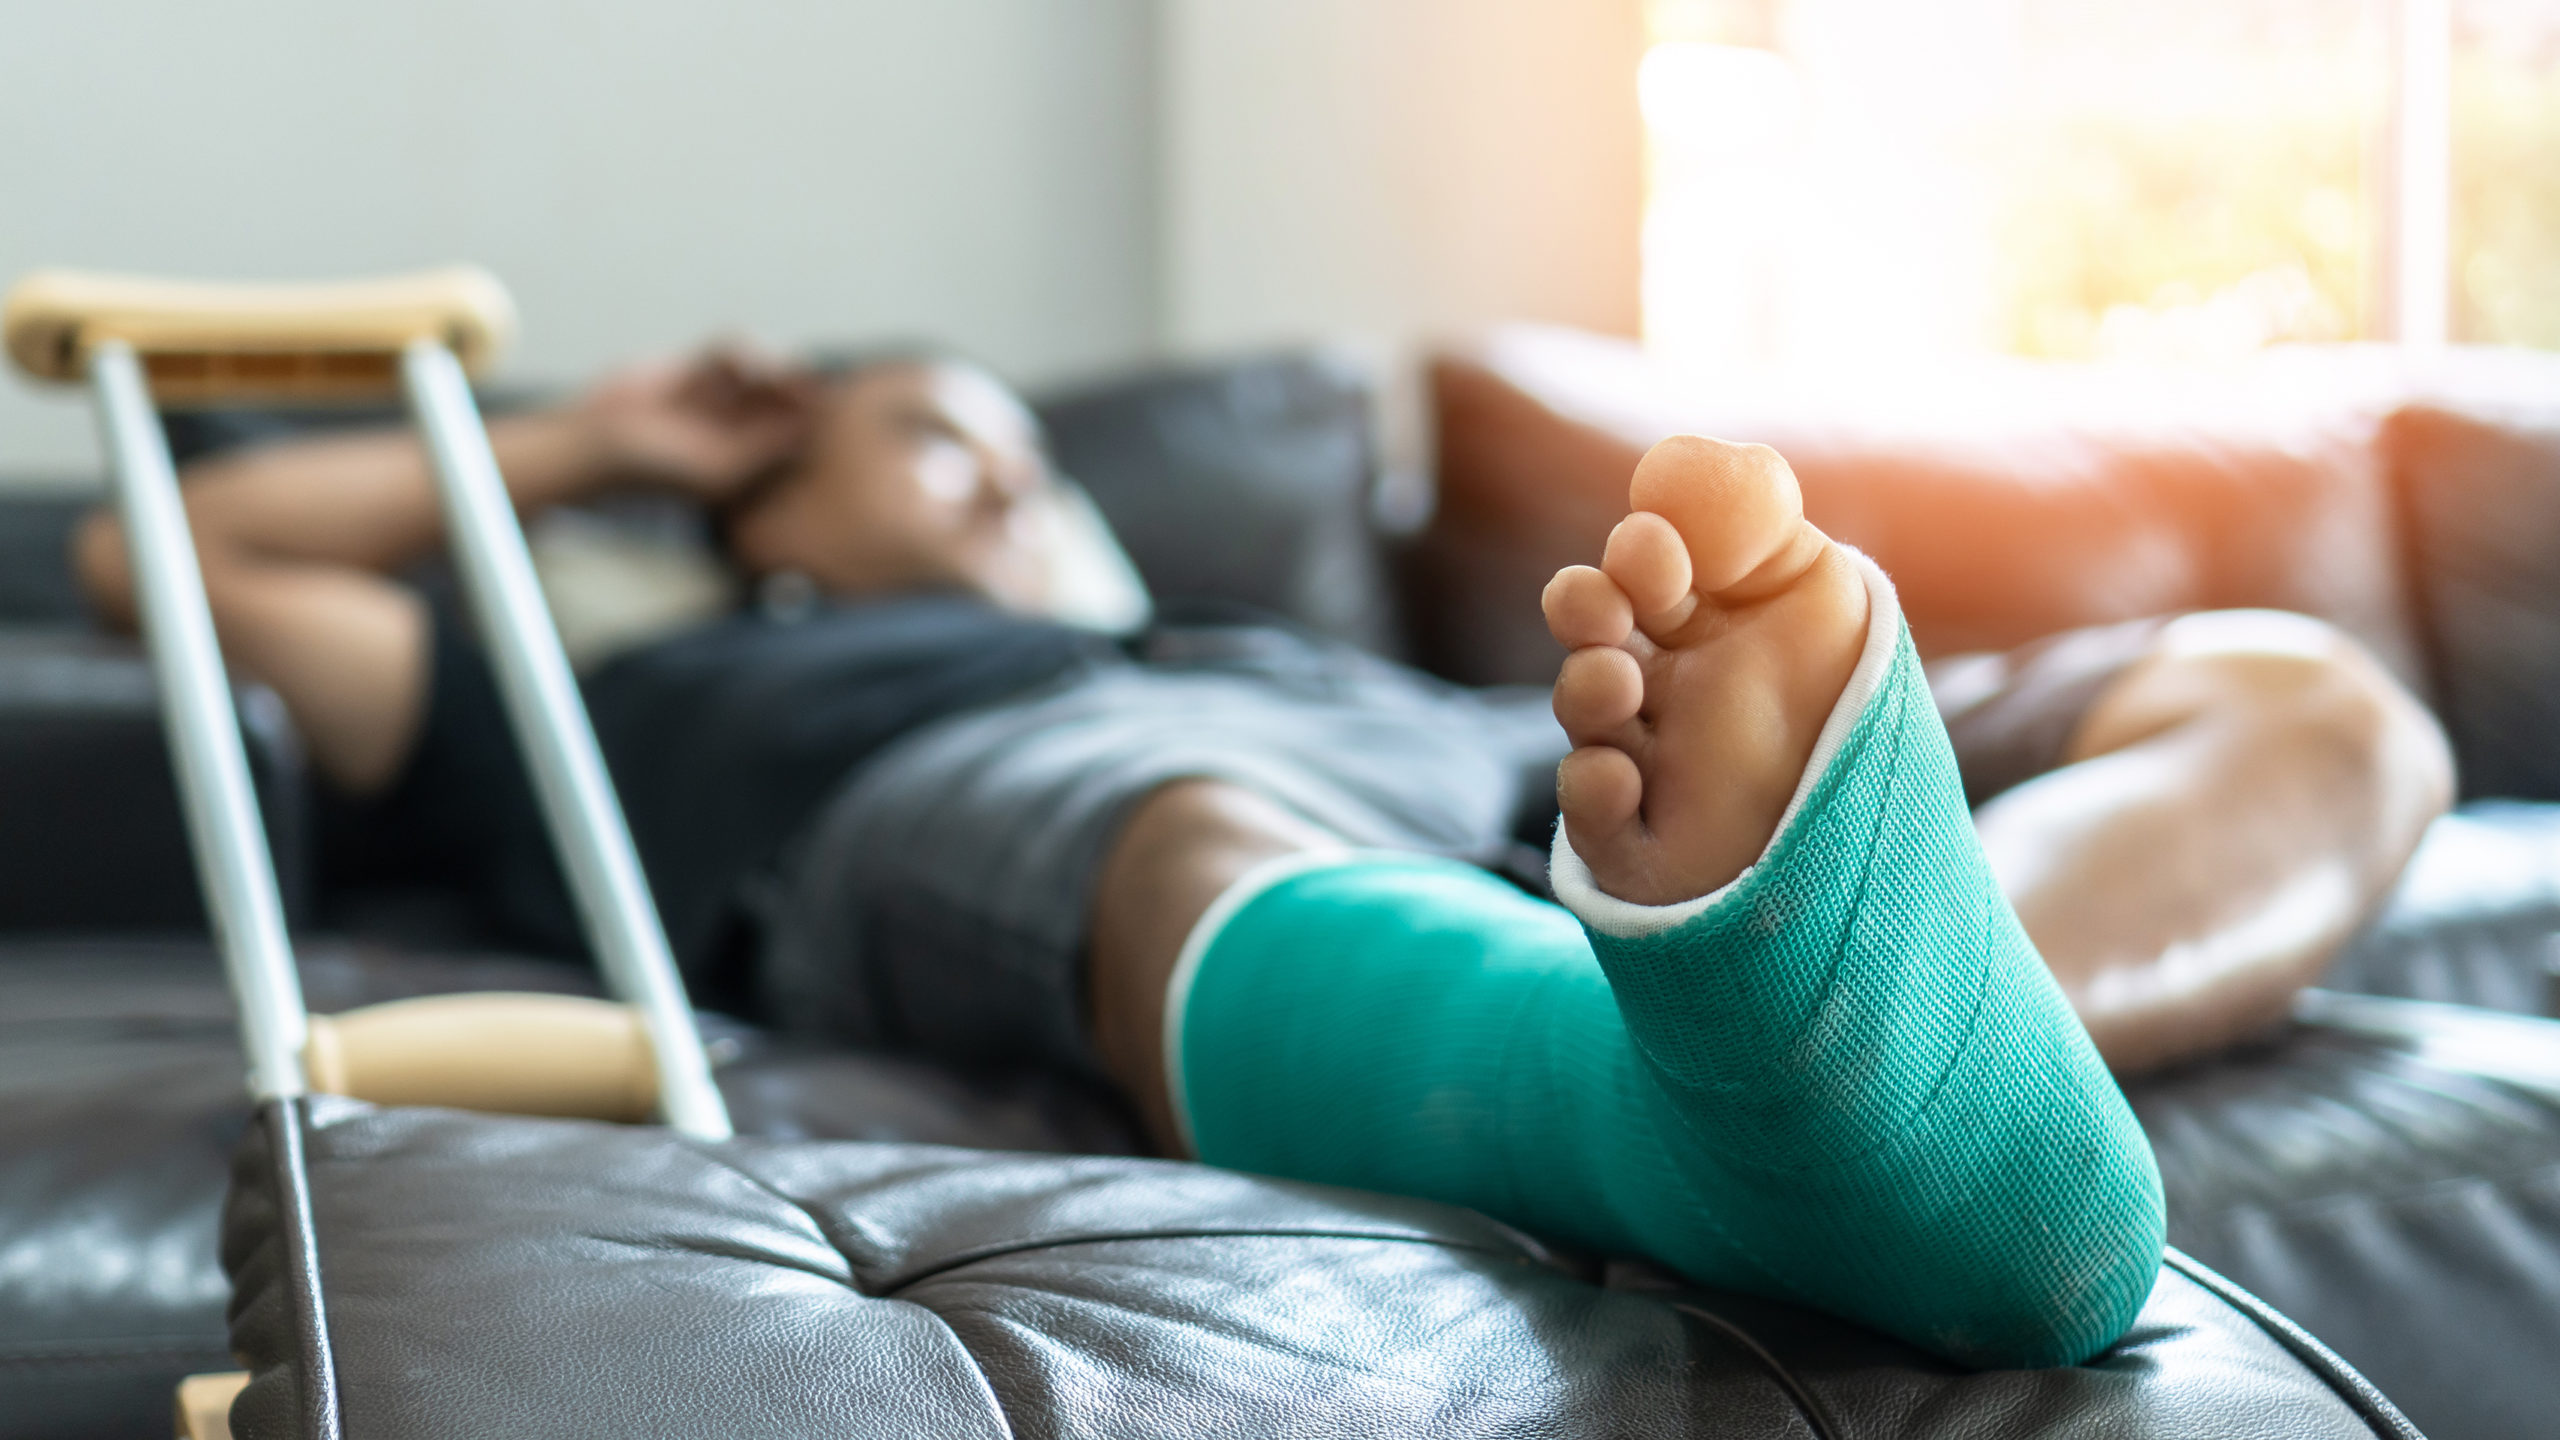 How To Make A Personal Injury Claim In Court